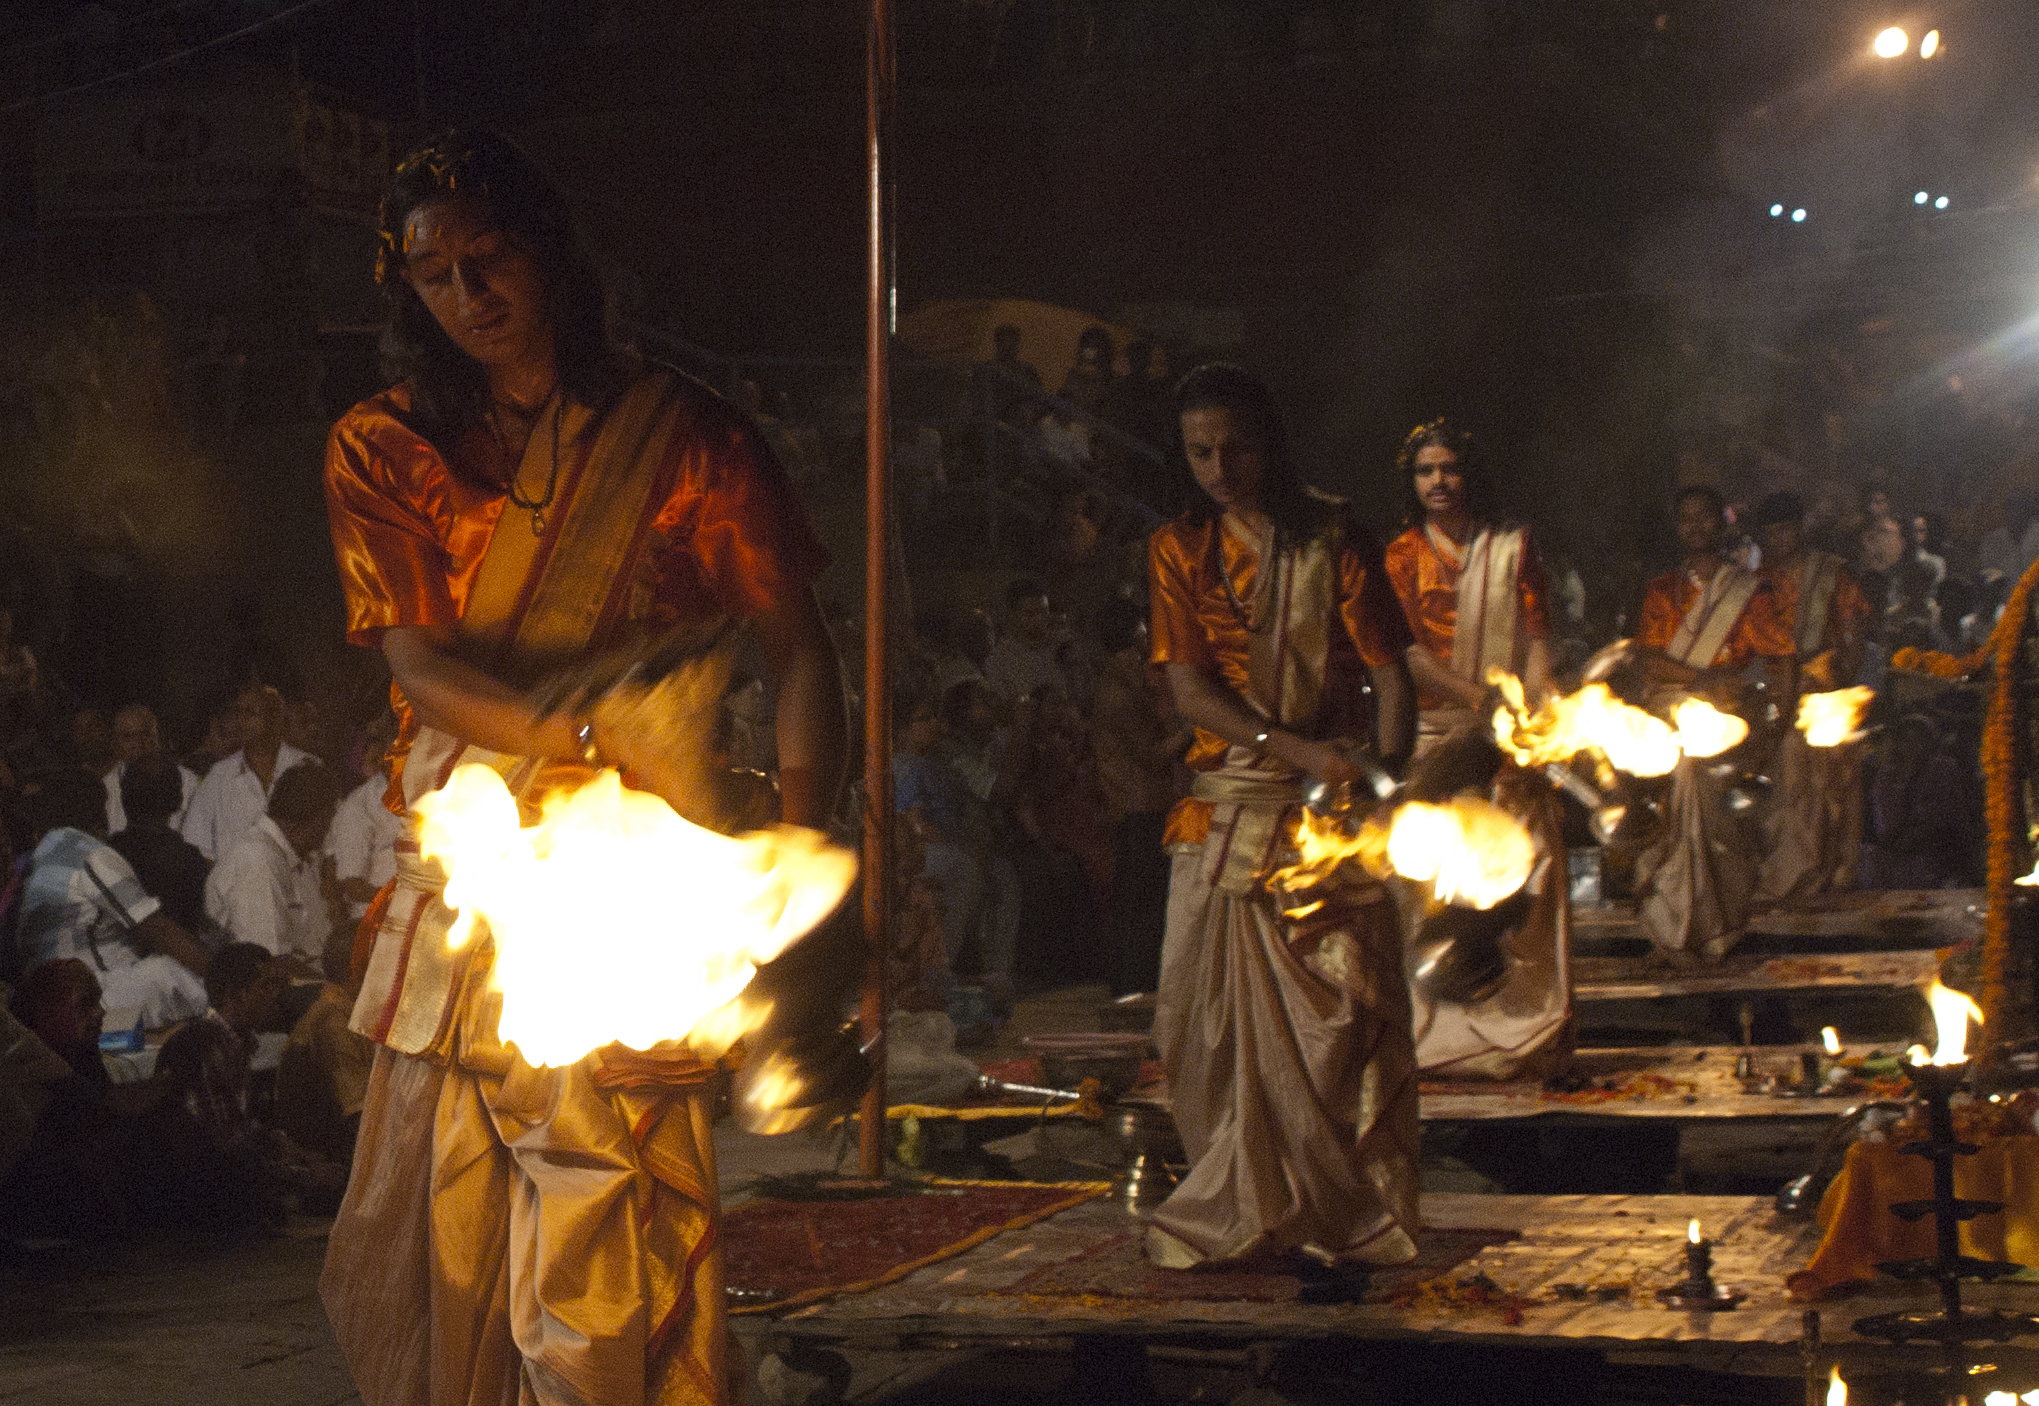 Fire dancers perform in the nightly ceremony along the Ganges.